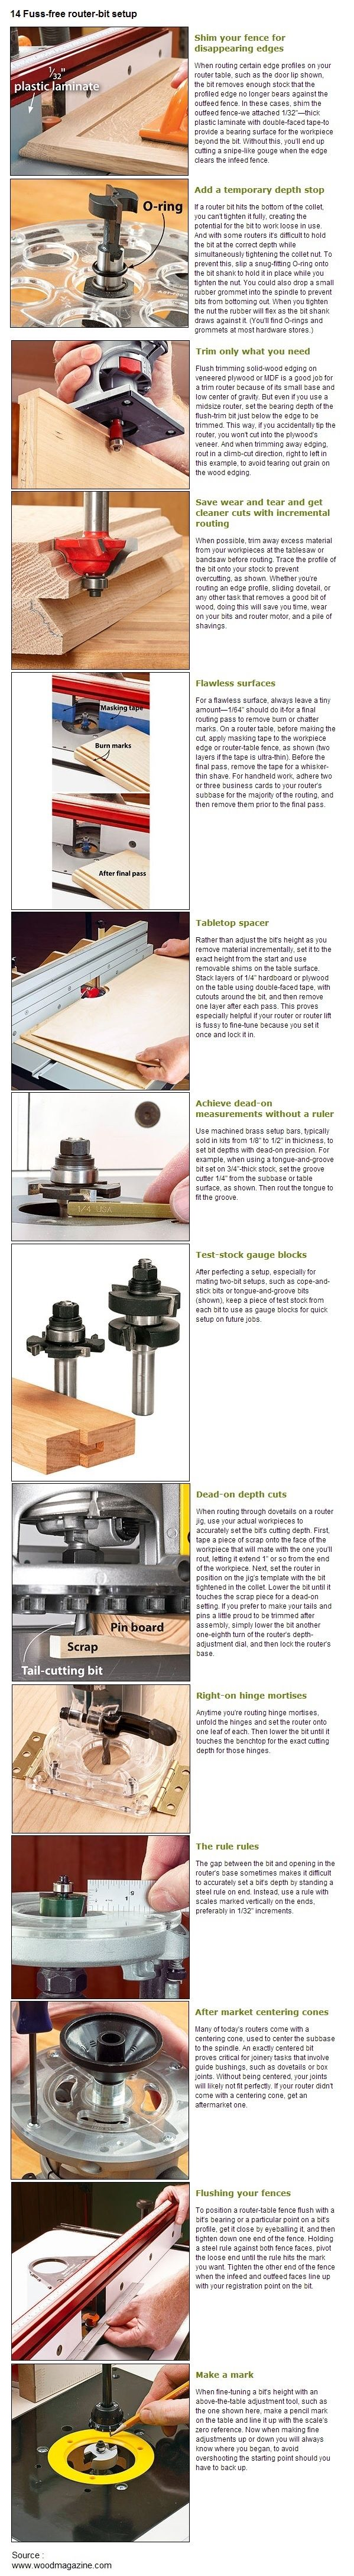 327 best router table and jigs images on pinterest router table 14 fuss free router bit setup keyboard keysfo Images